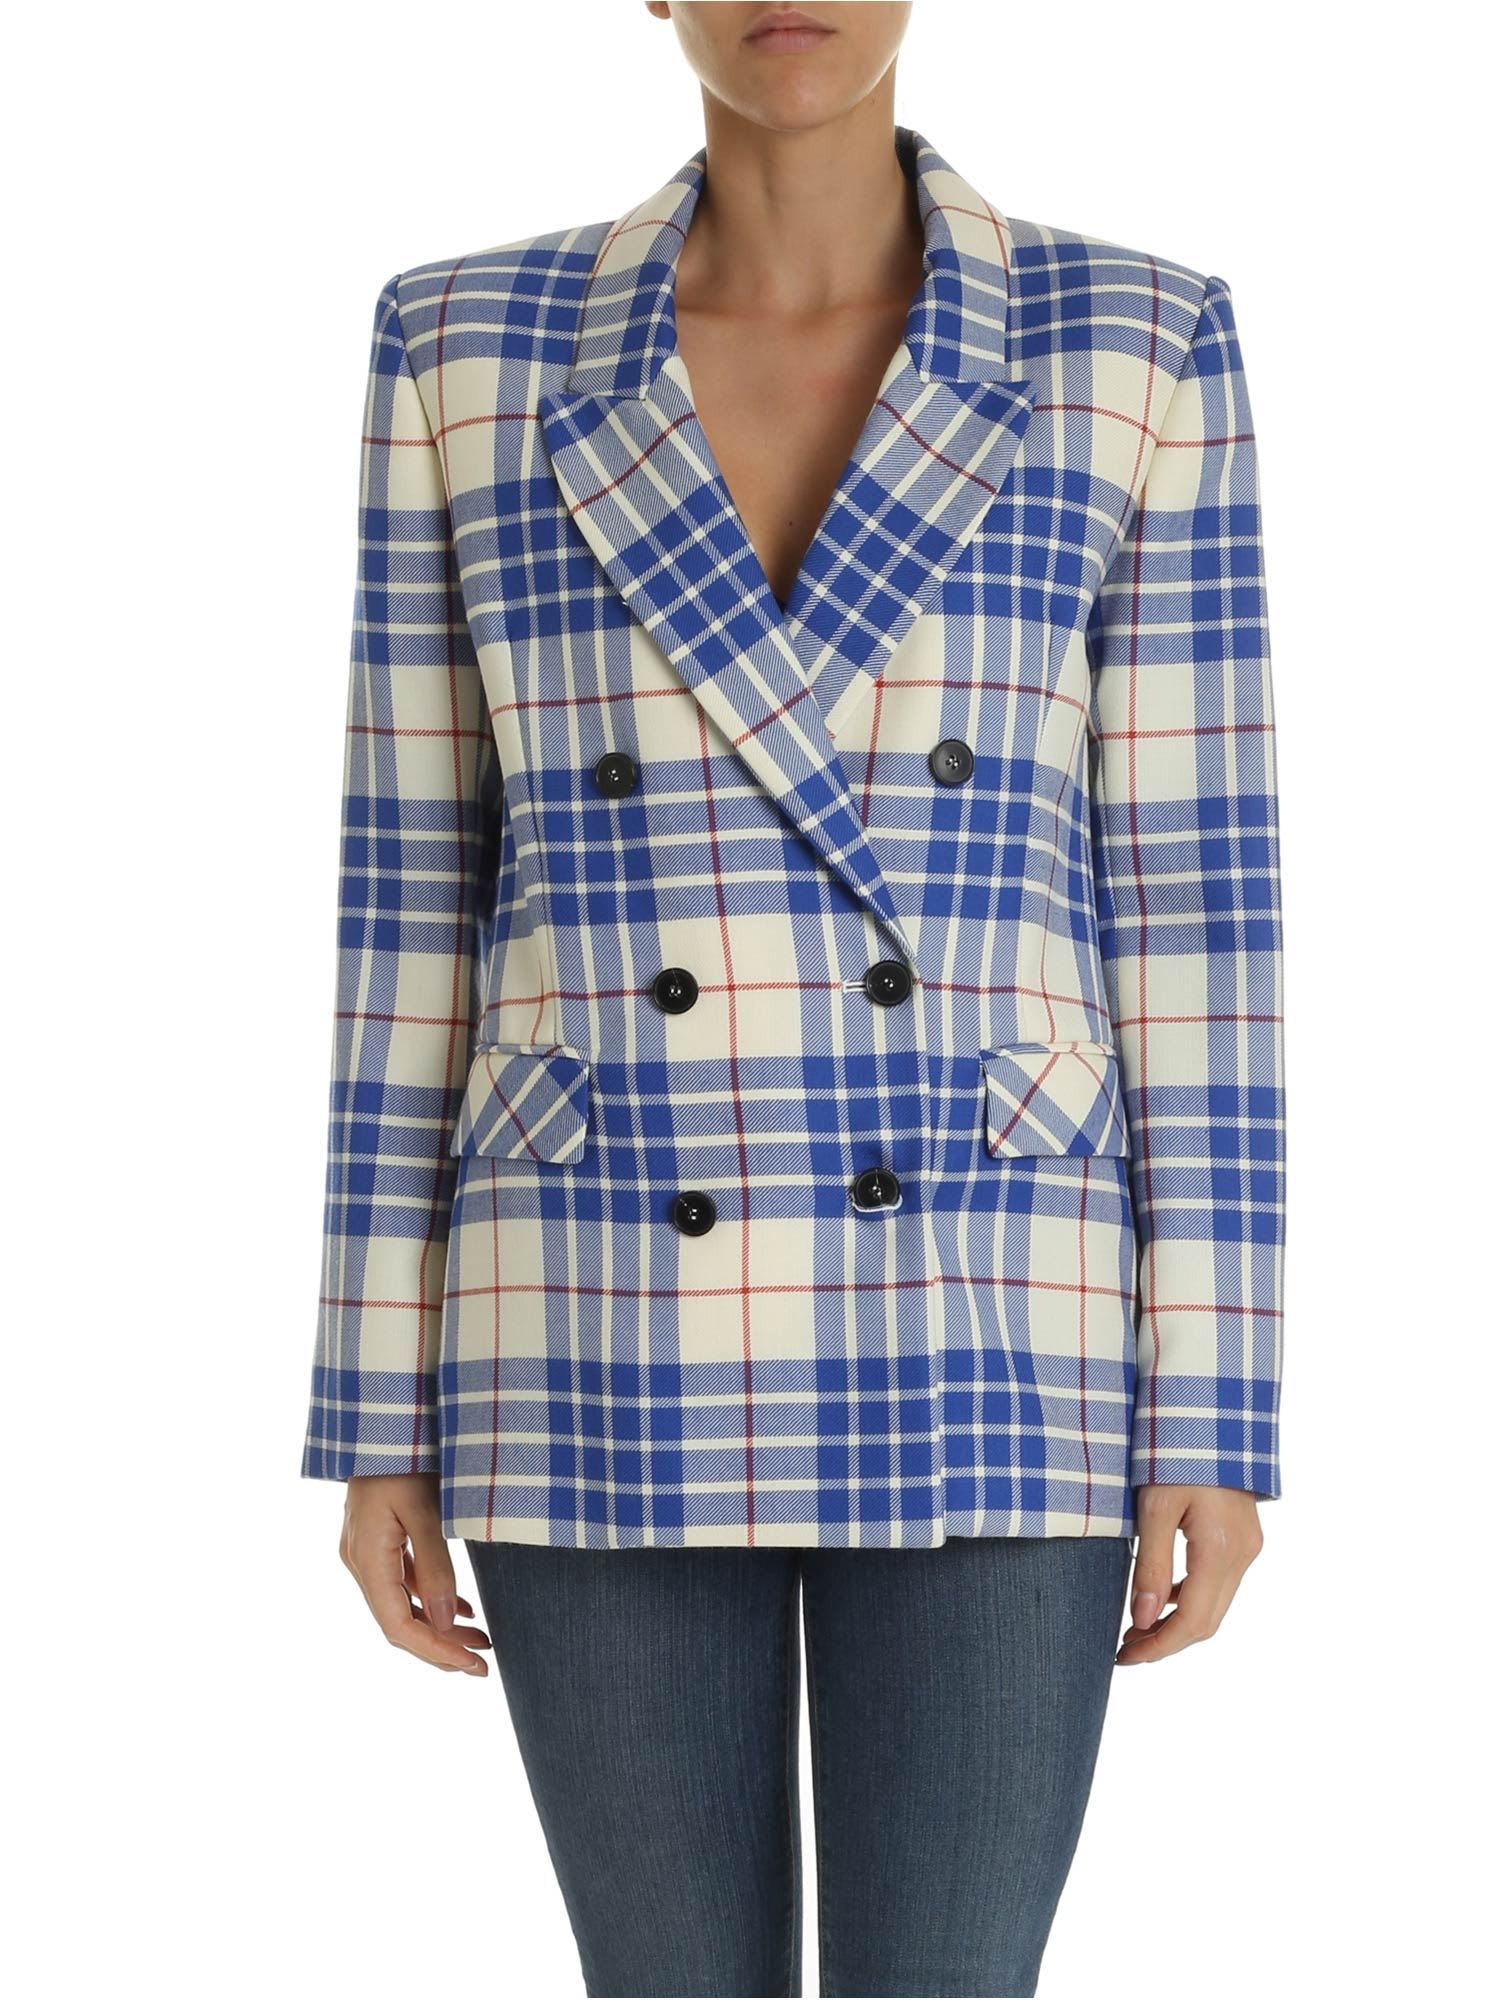 Giada Benincasa – Jacket With Checkered Pattern